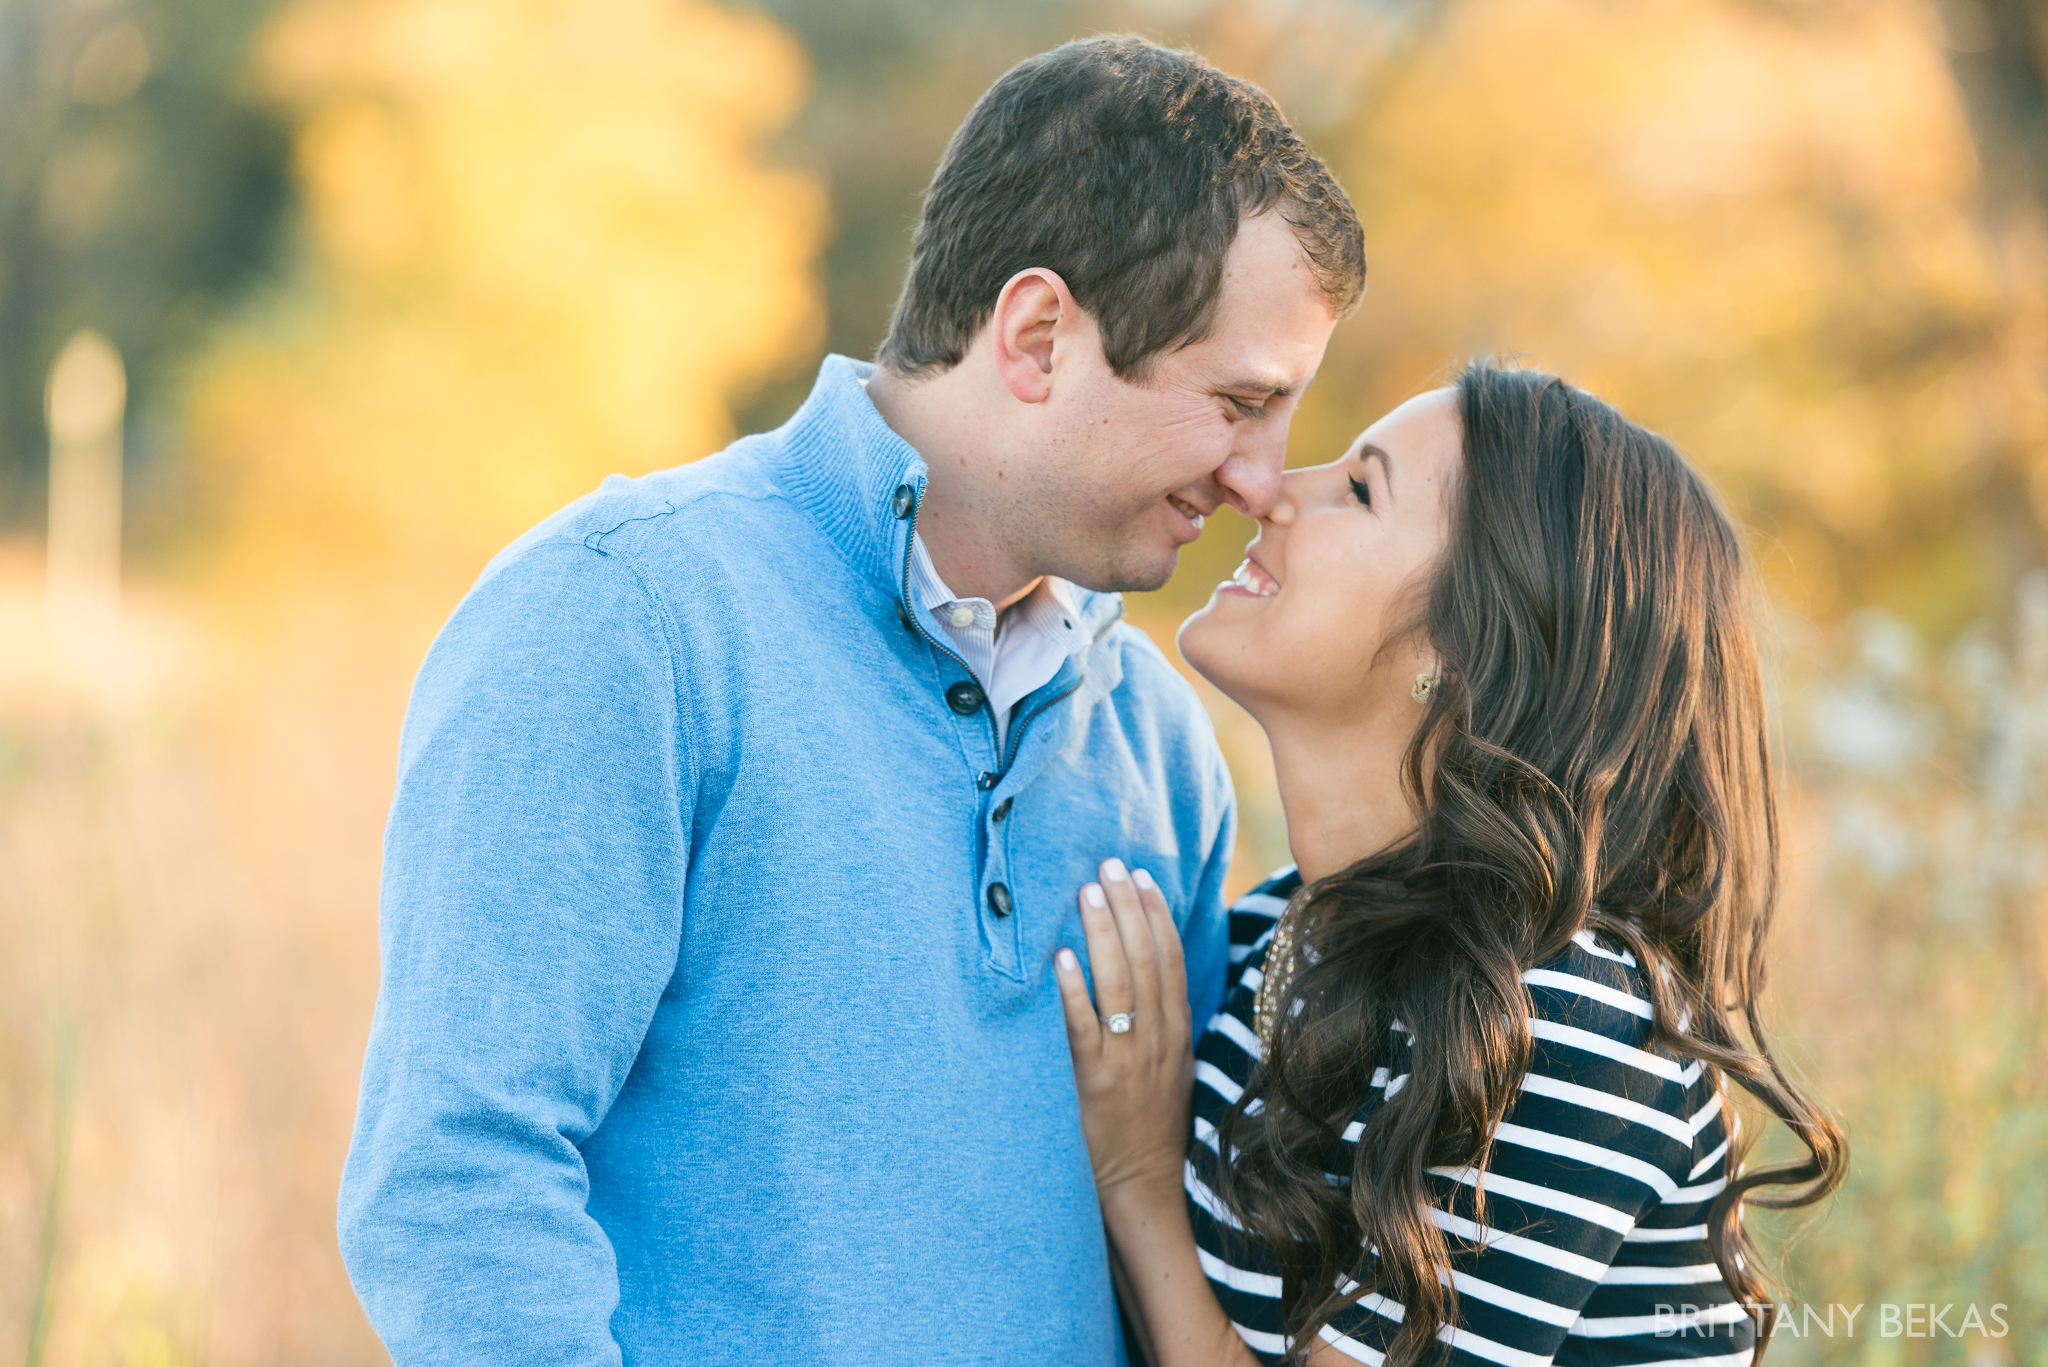 Chicago Engagement Lincoln Park Engagement Photos - Brittany Bekas Photography_0025